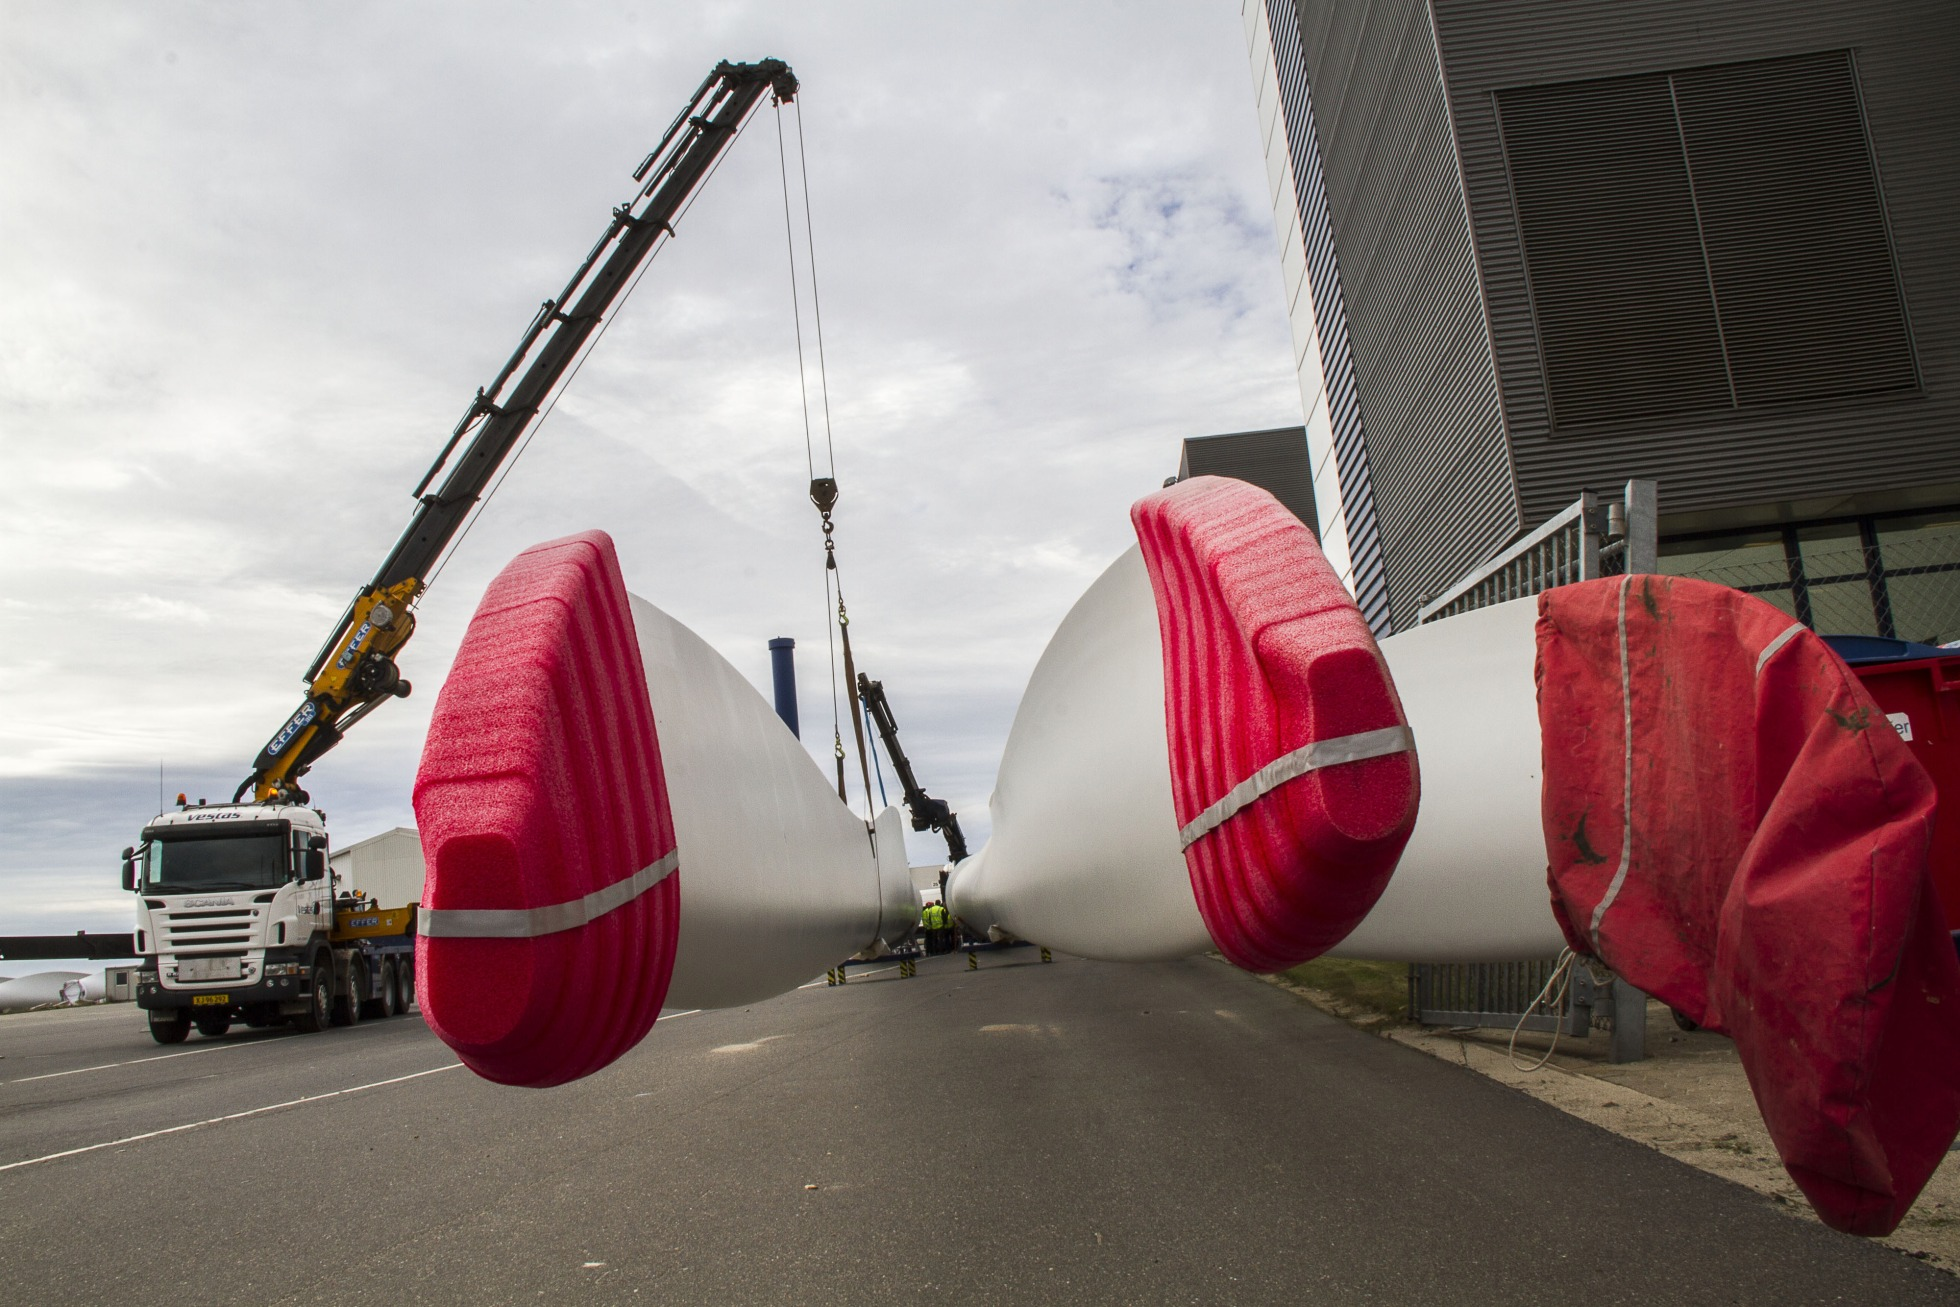 Protective covers sit on wind turbine blades as they are moved at the Vestas Wind Systems A/S blade factory in Lem.